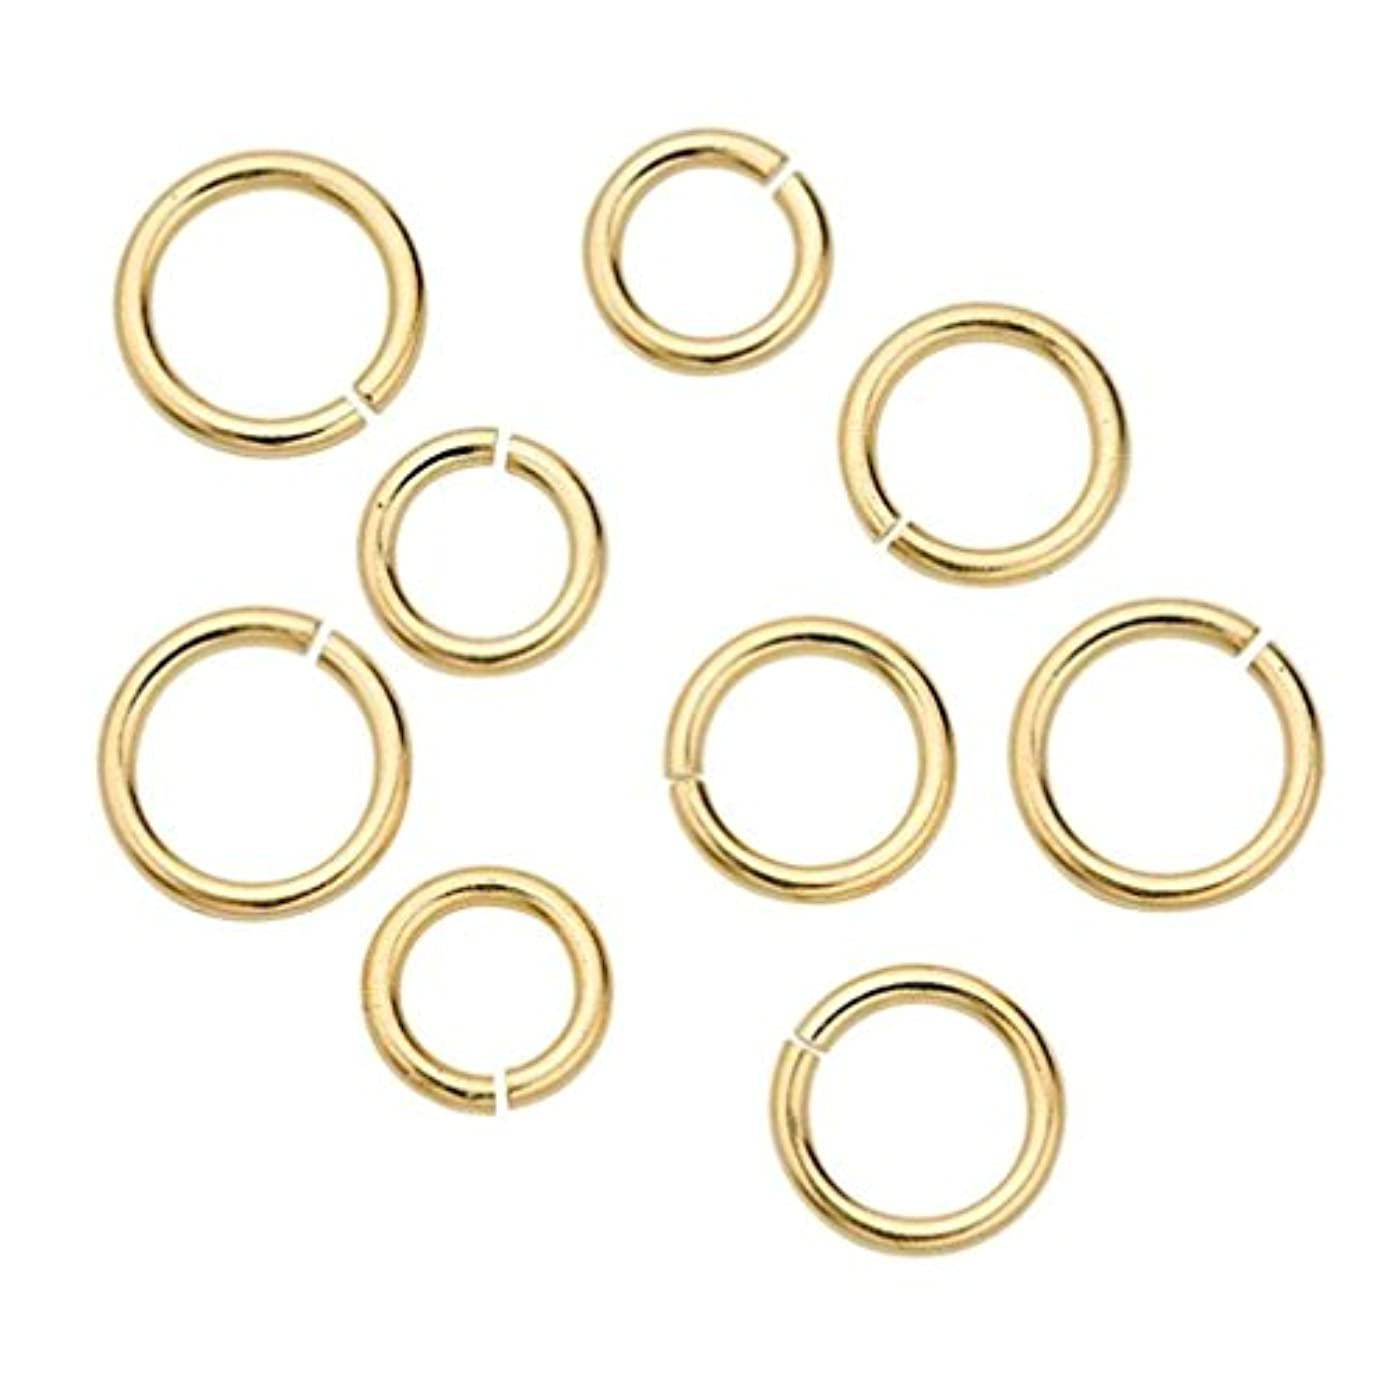 50pcs 14k Gold on Sterling Silver Open Jump Rings 6mm Connector (Wire ~22GA or 0.6mm) for Jewelry Craft Making SS289-6